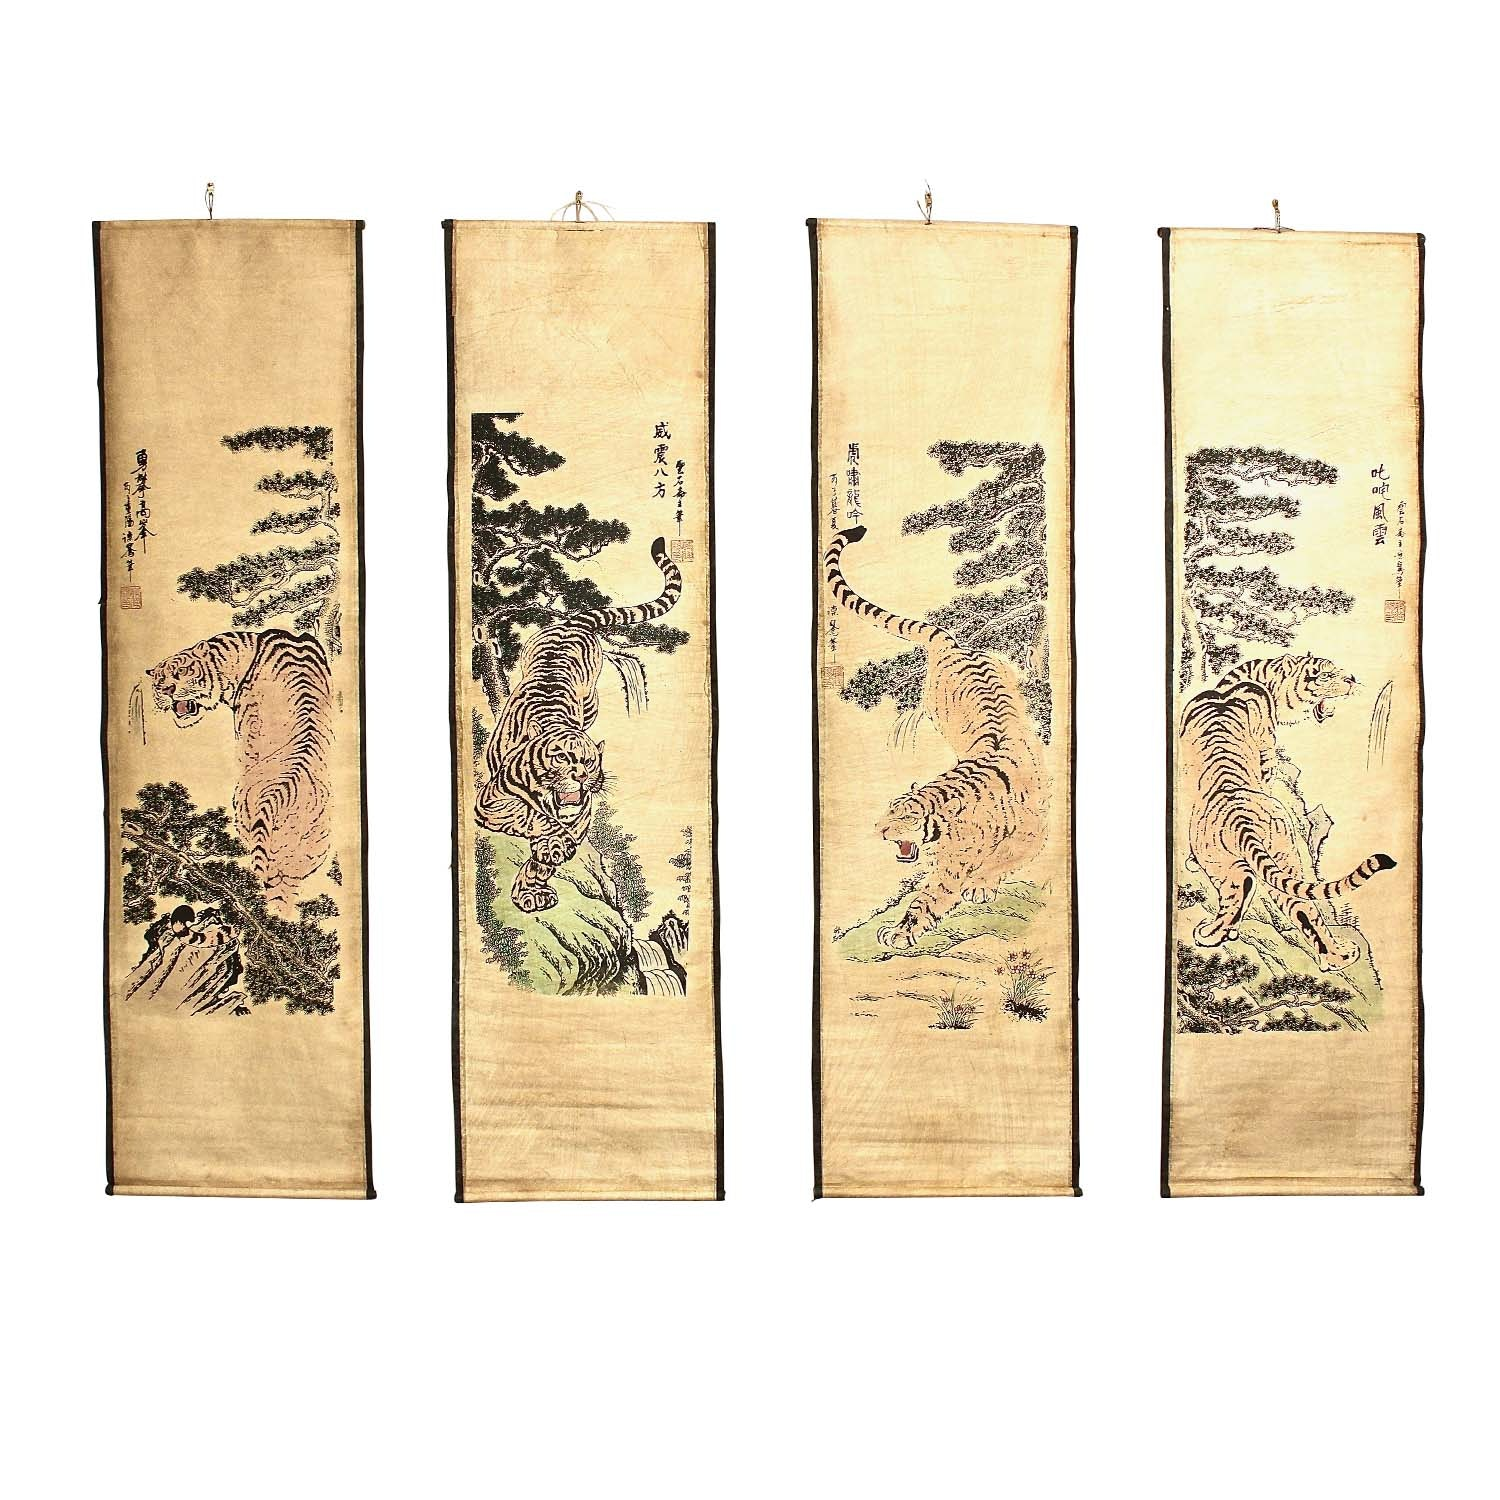 Chinese Printed Hanging Scrolls of Tigers